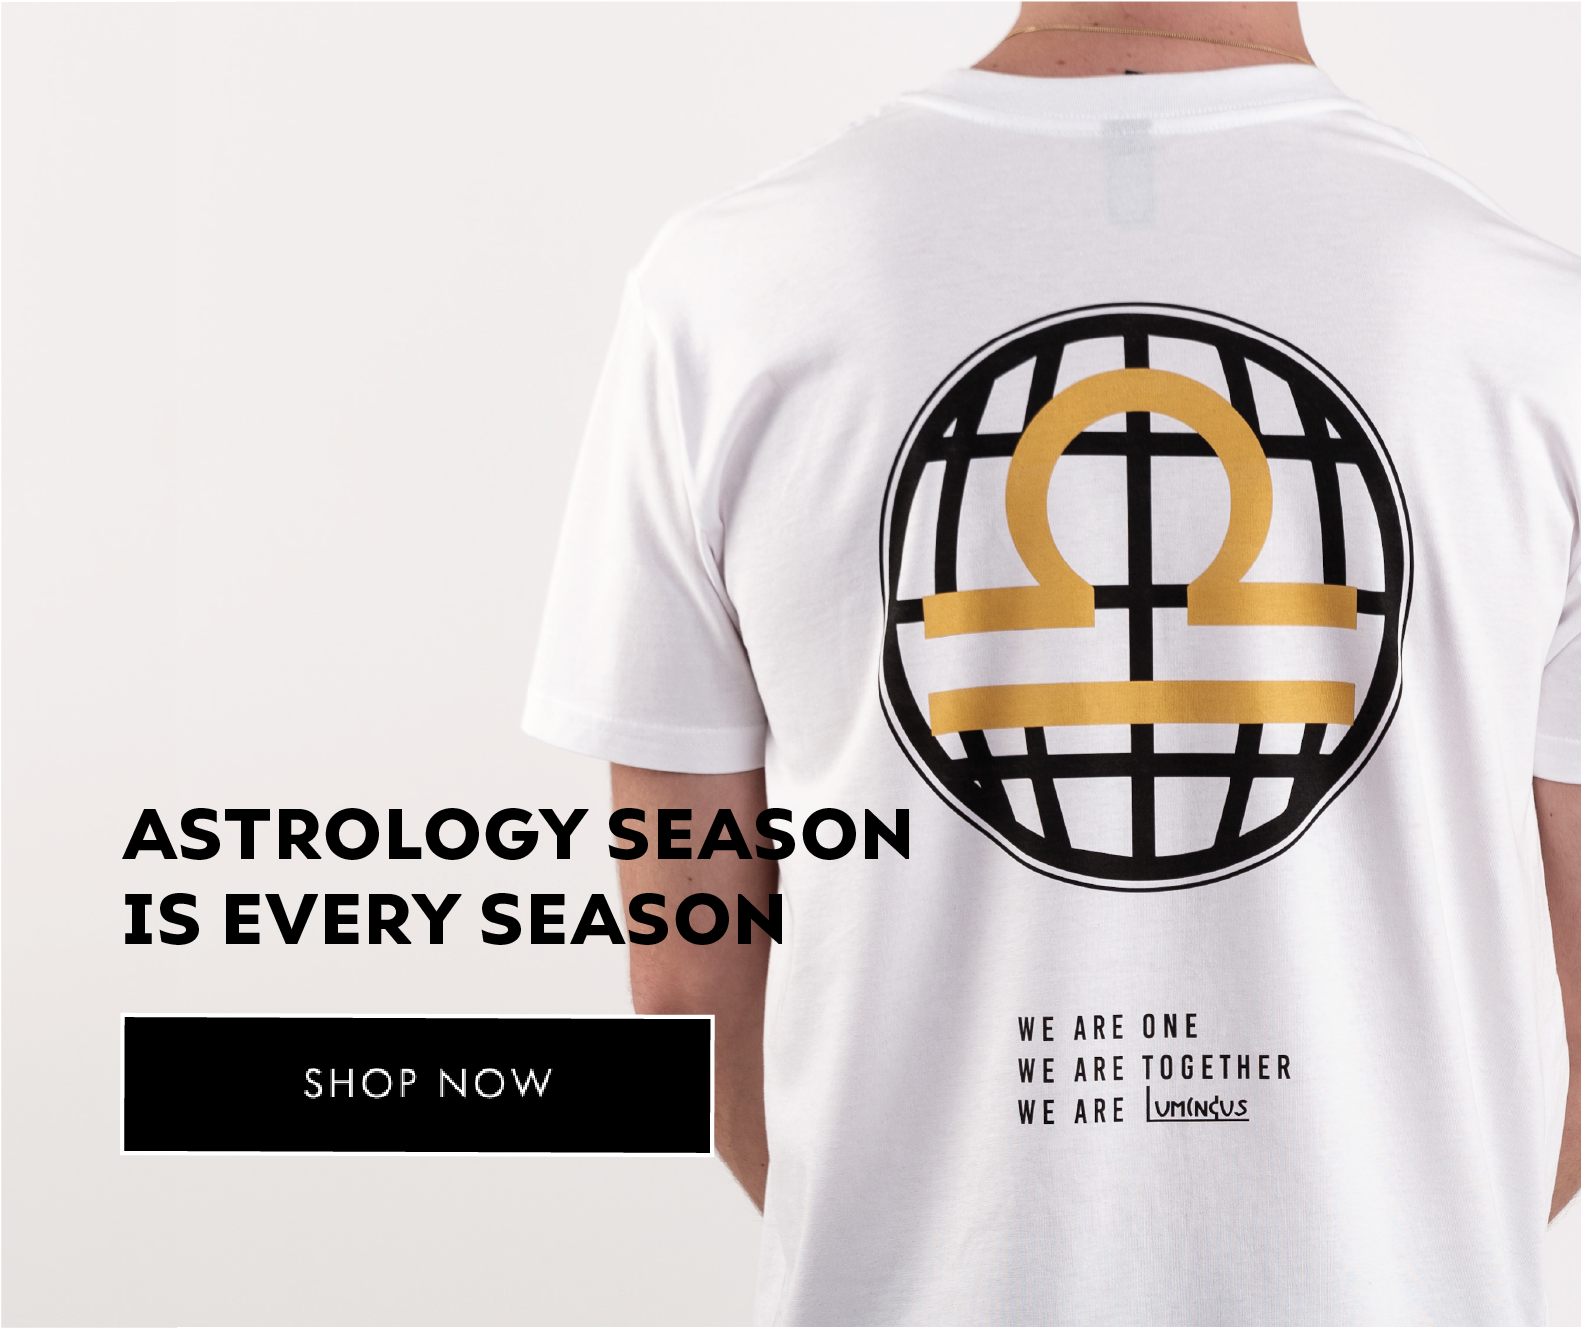 Astrology Season Is Every Season - Shop Now